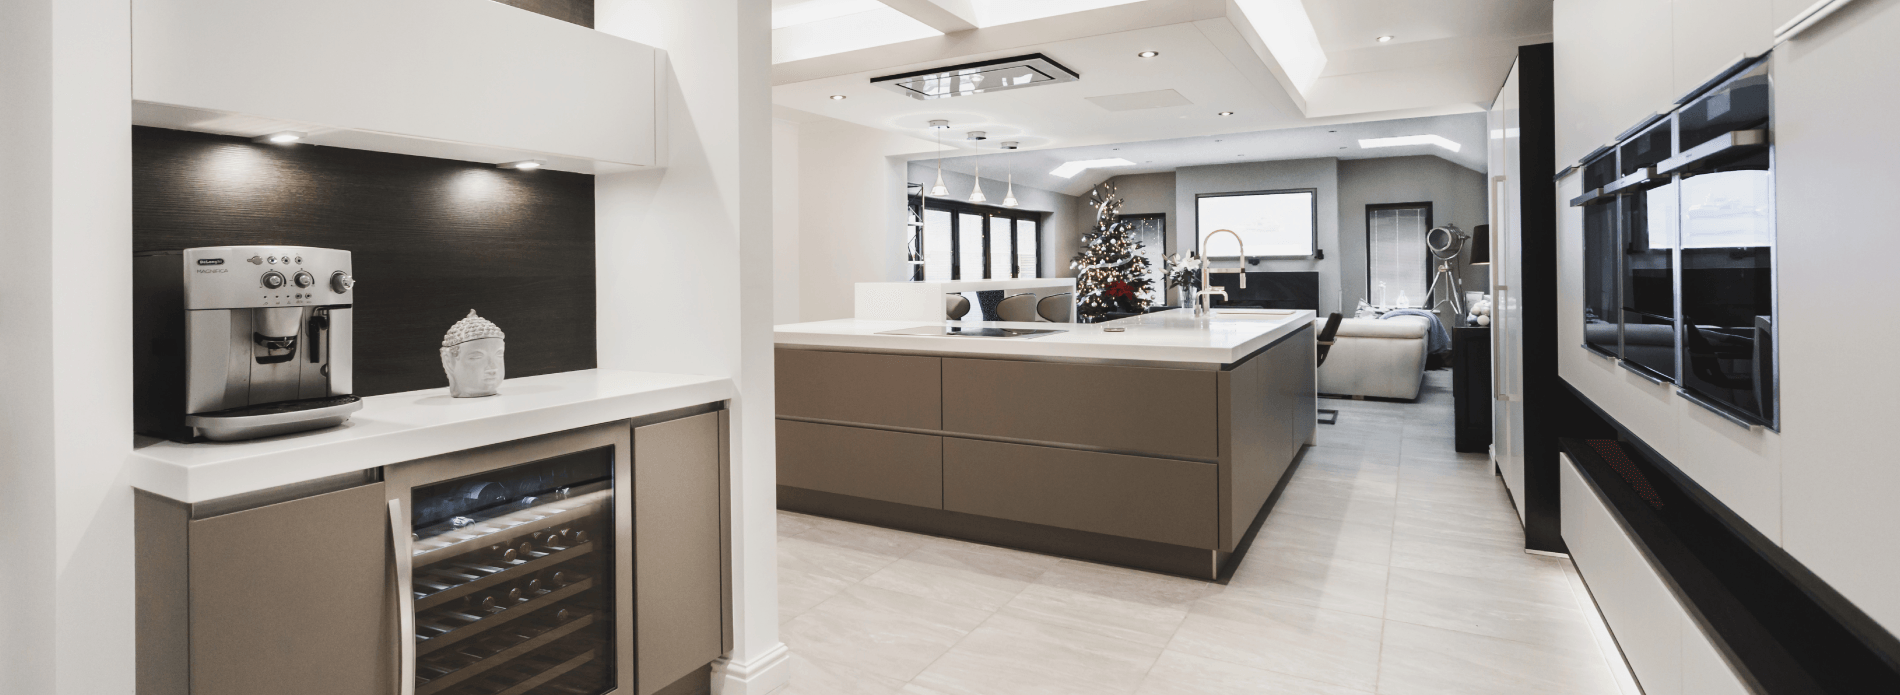 Exceptional A Family Centric Kitchen With An Intriguing Twist